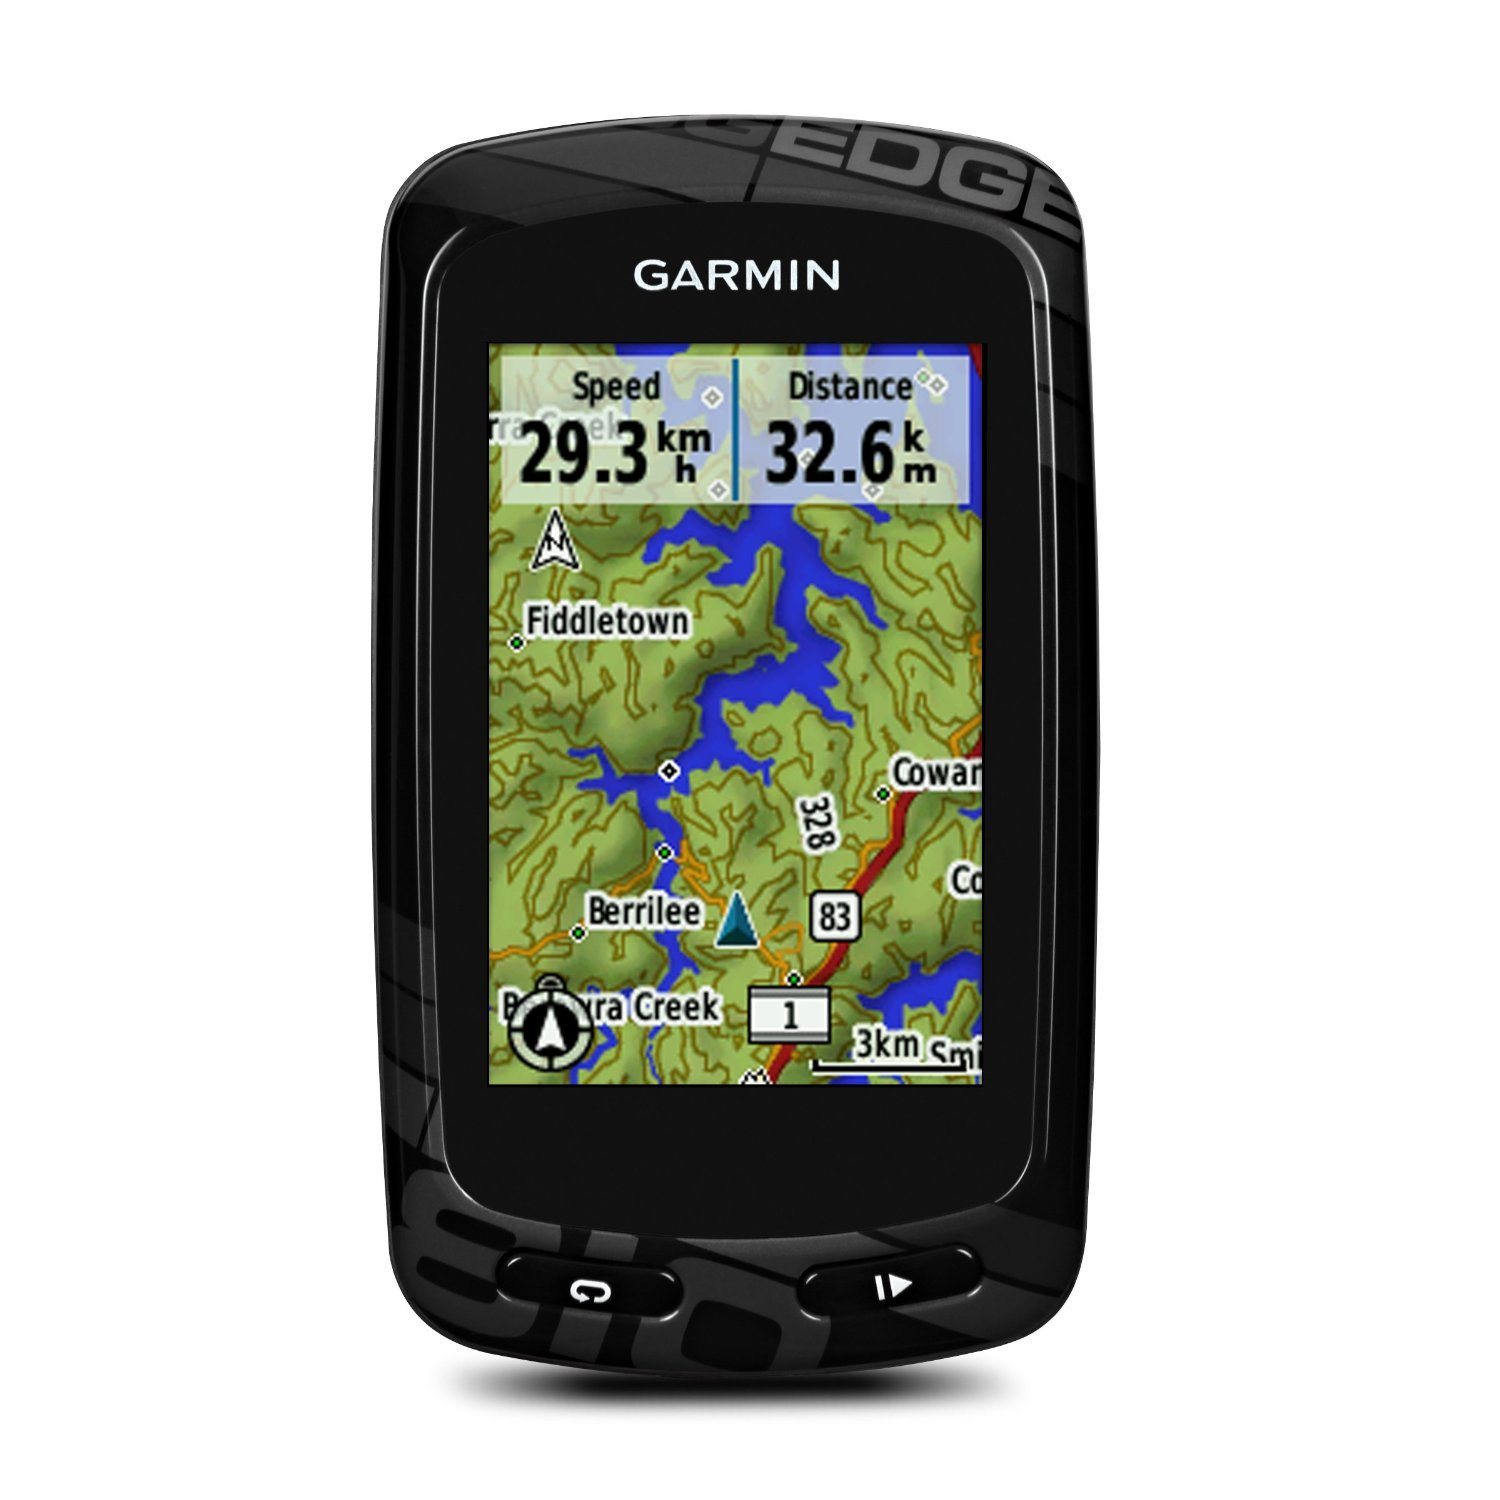 Garmin Edge Computer Certified Refurbished Image 3